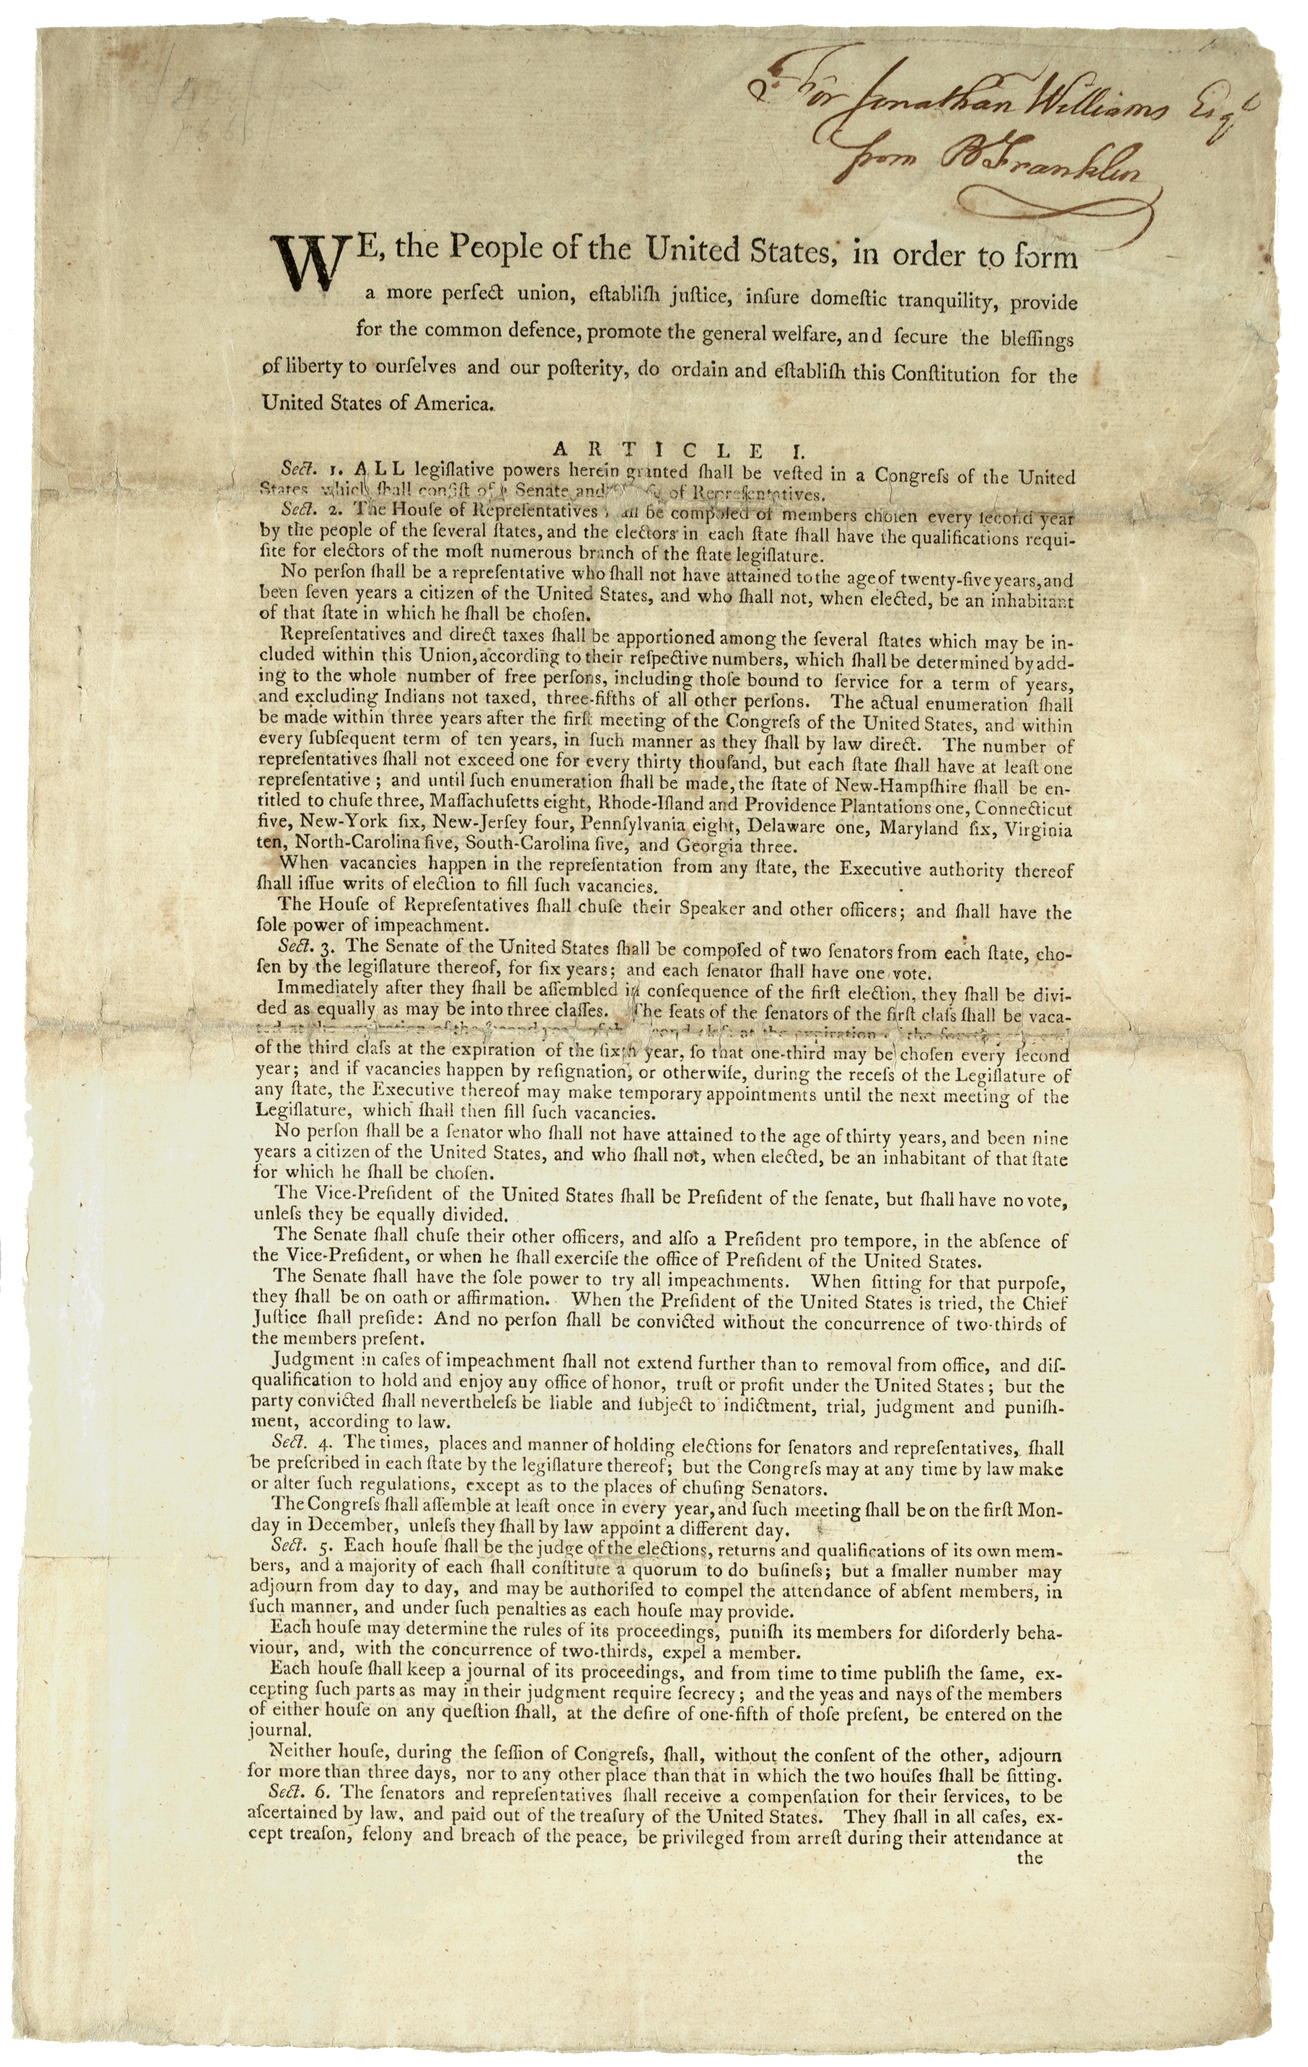 Two versions of the Preamble to the Constitution, 1787